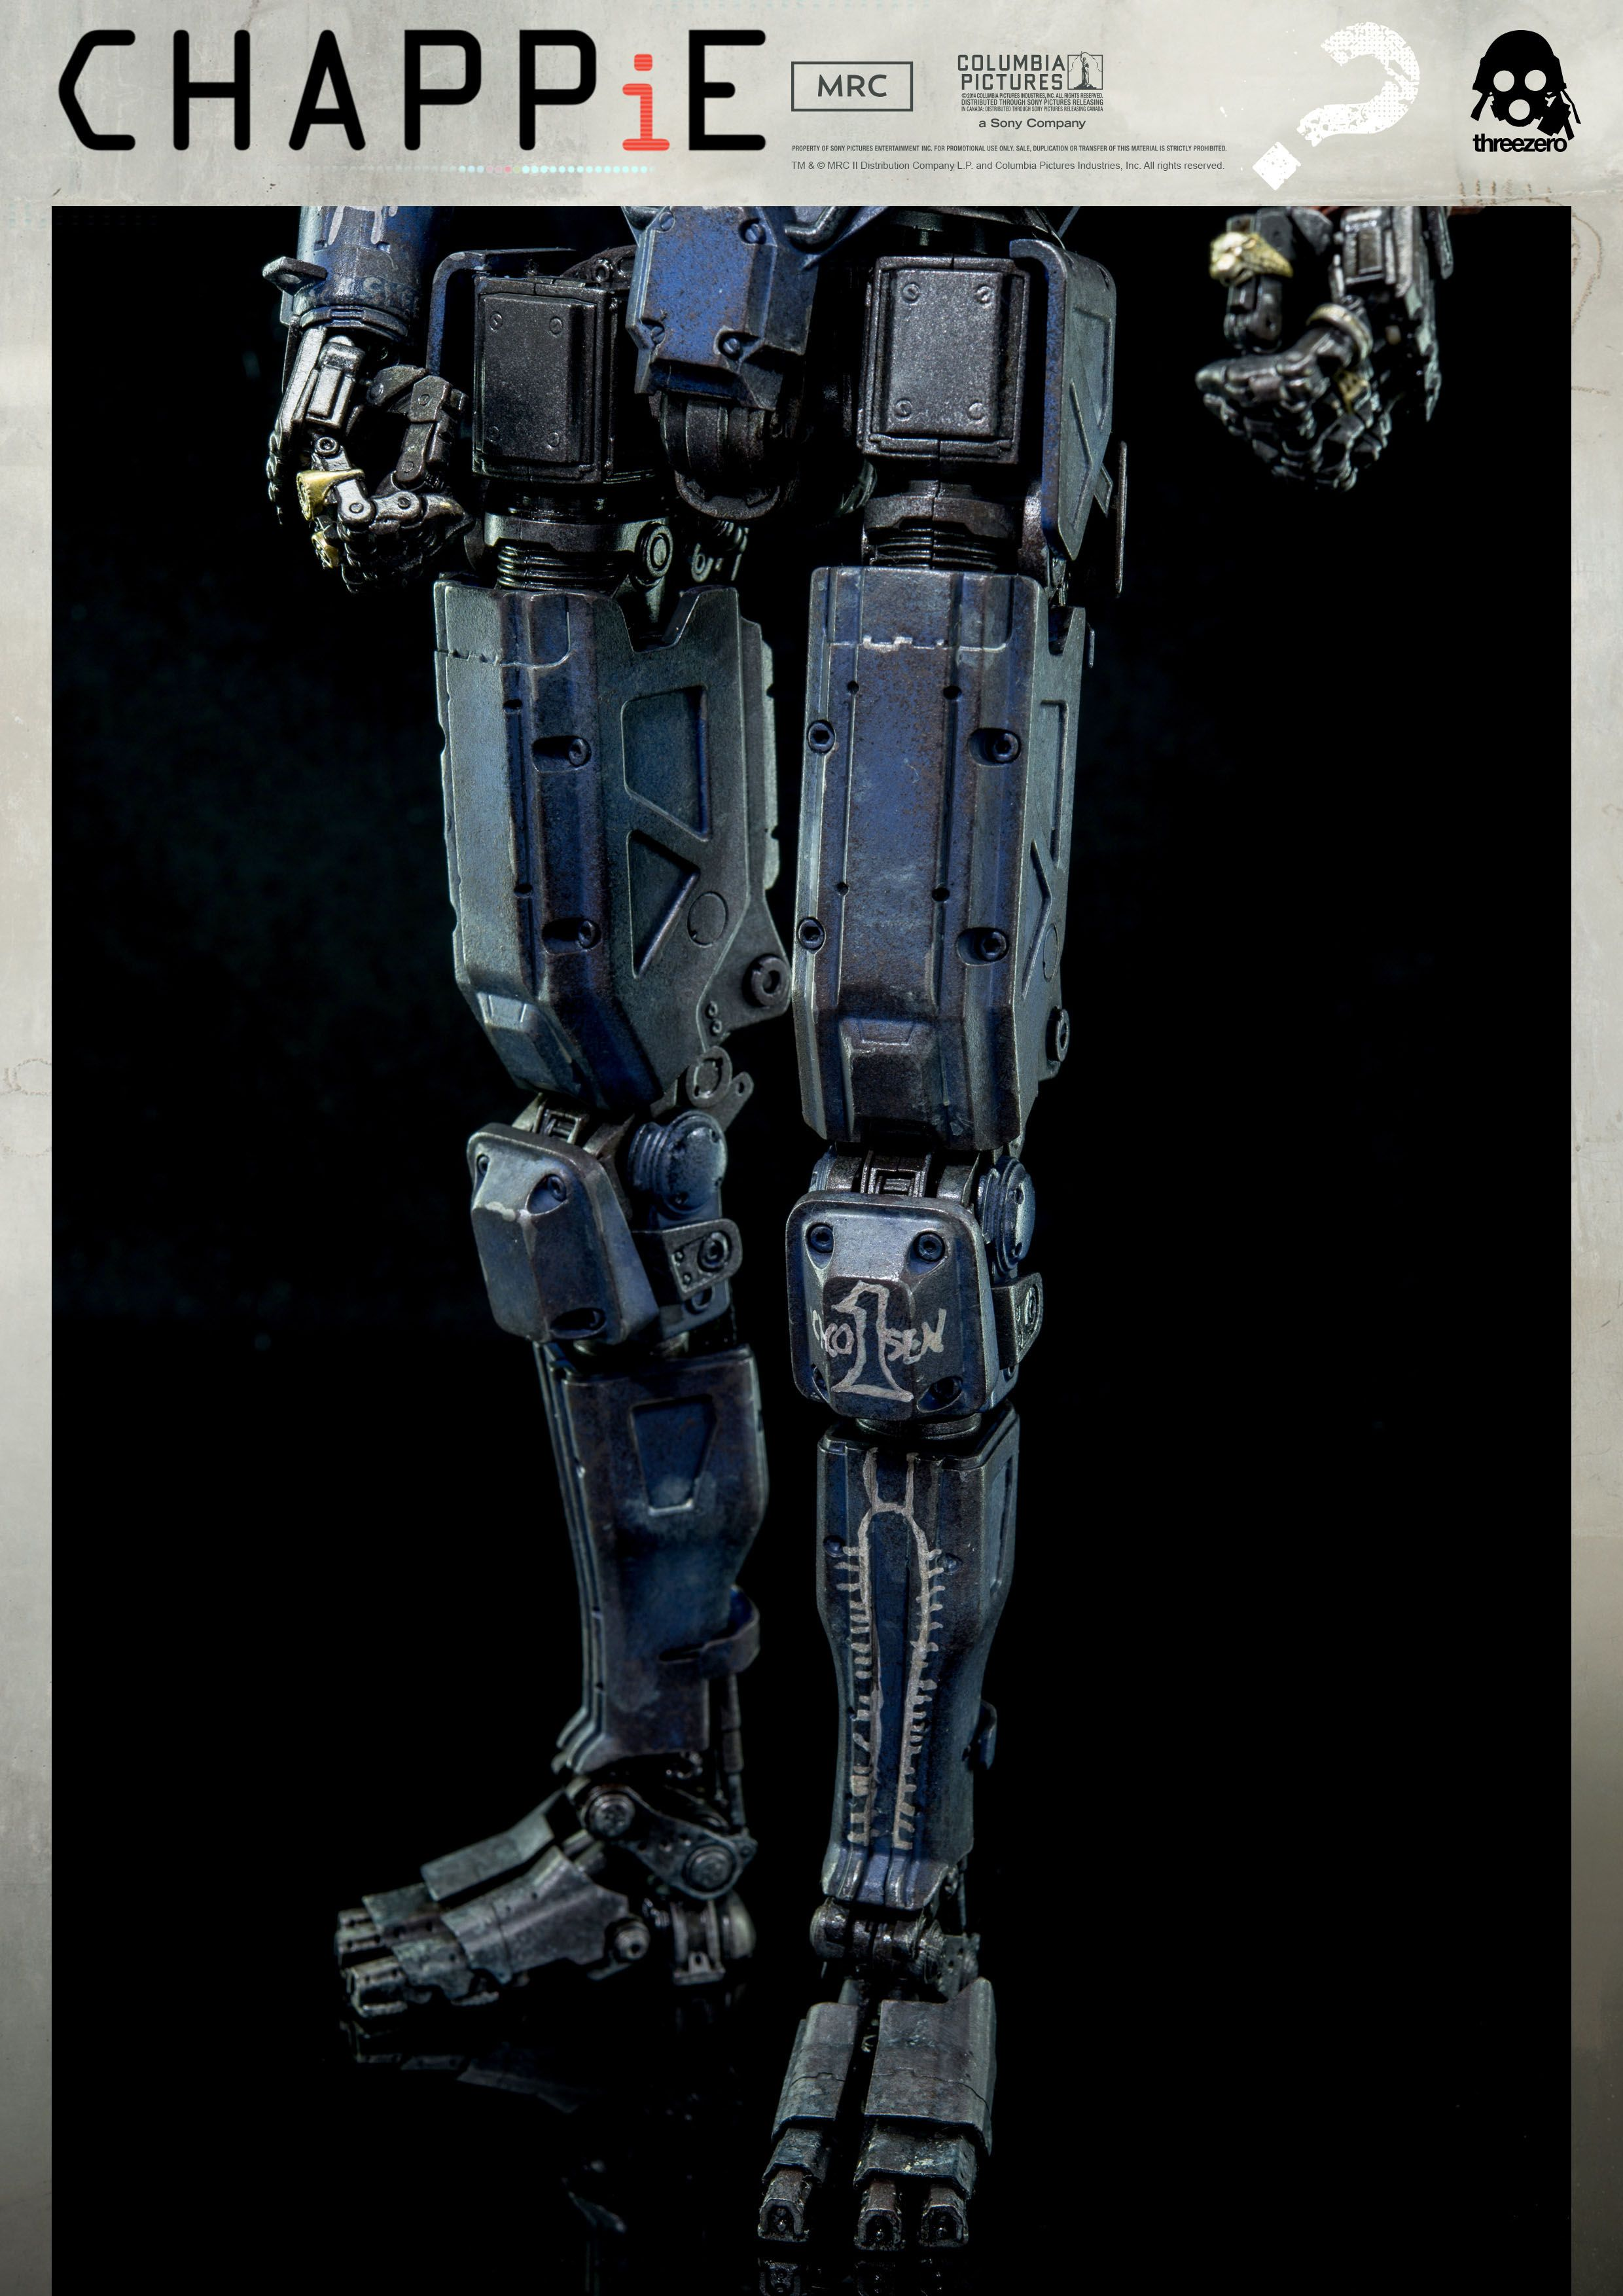 1 6th Scale Chappie Collectible Available For Pre Order On March 16th 9 00am Hong Kong Time At Www Threezerostore Com For 230 Usd 1780 Hkd With Chappie Robot